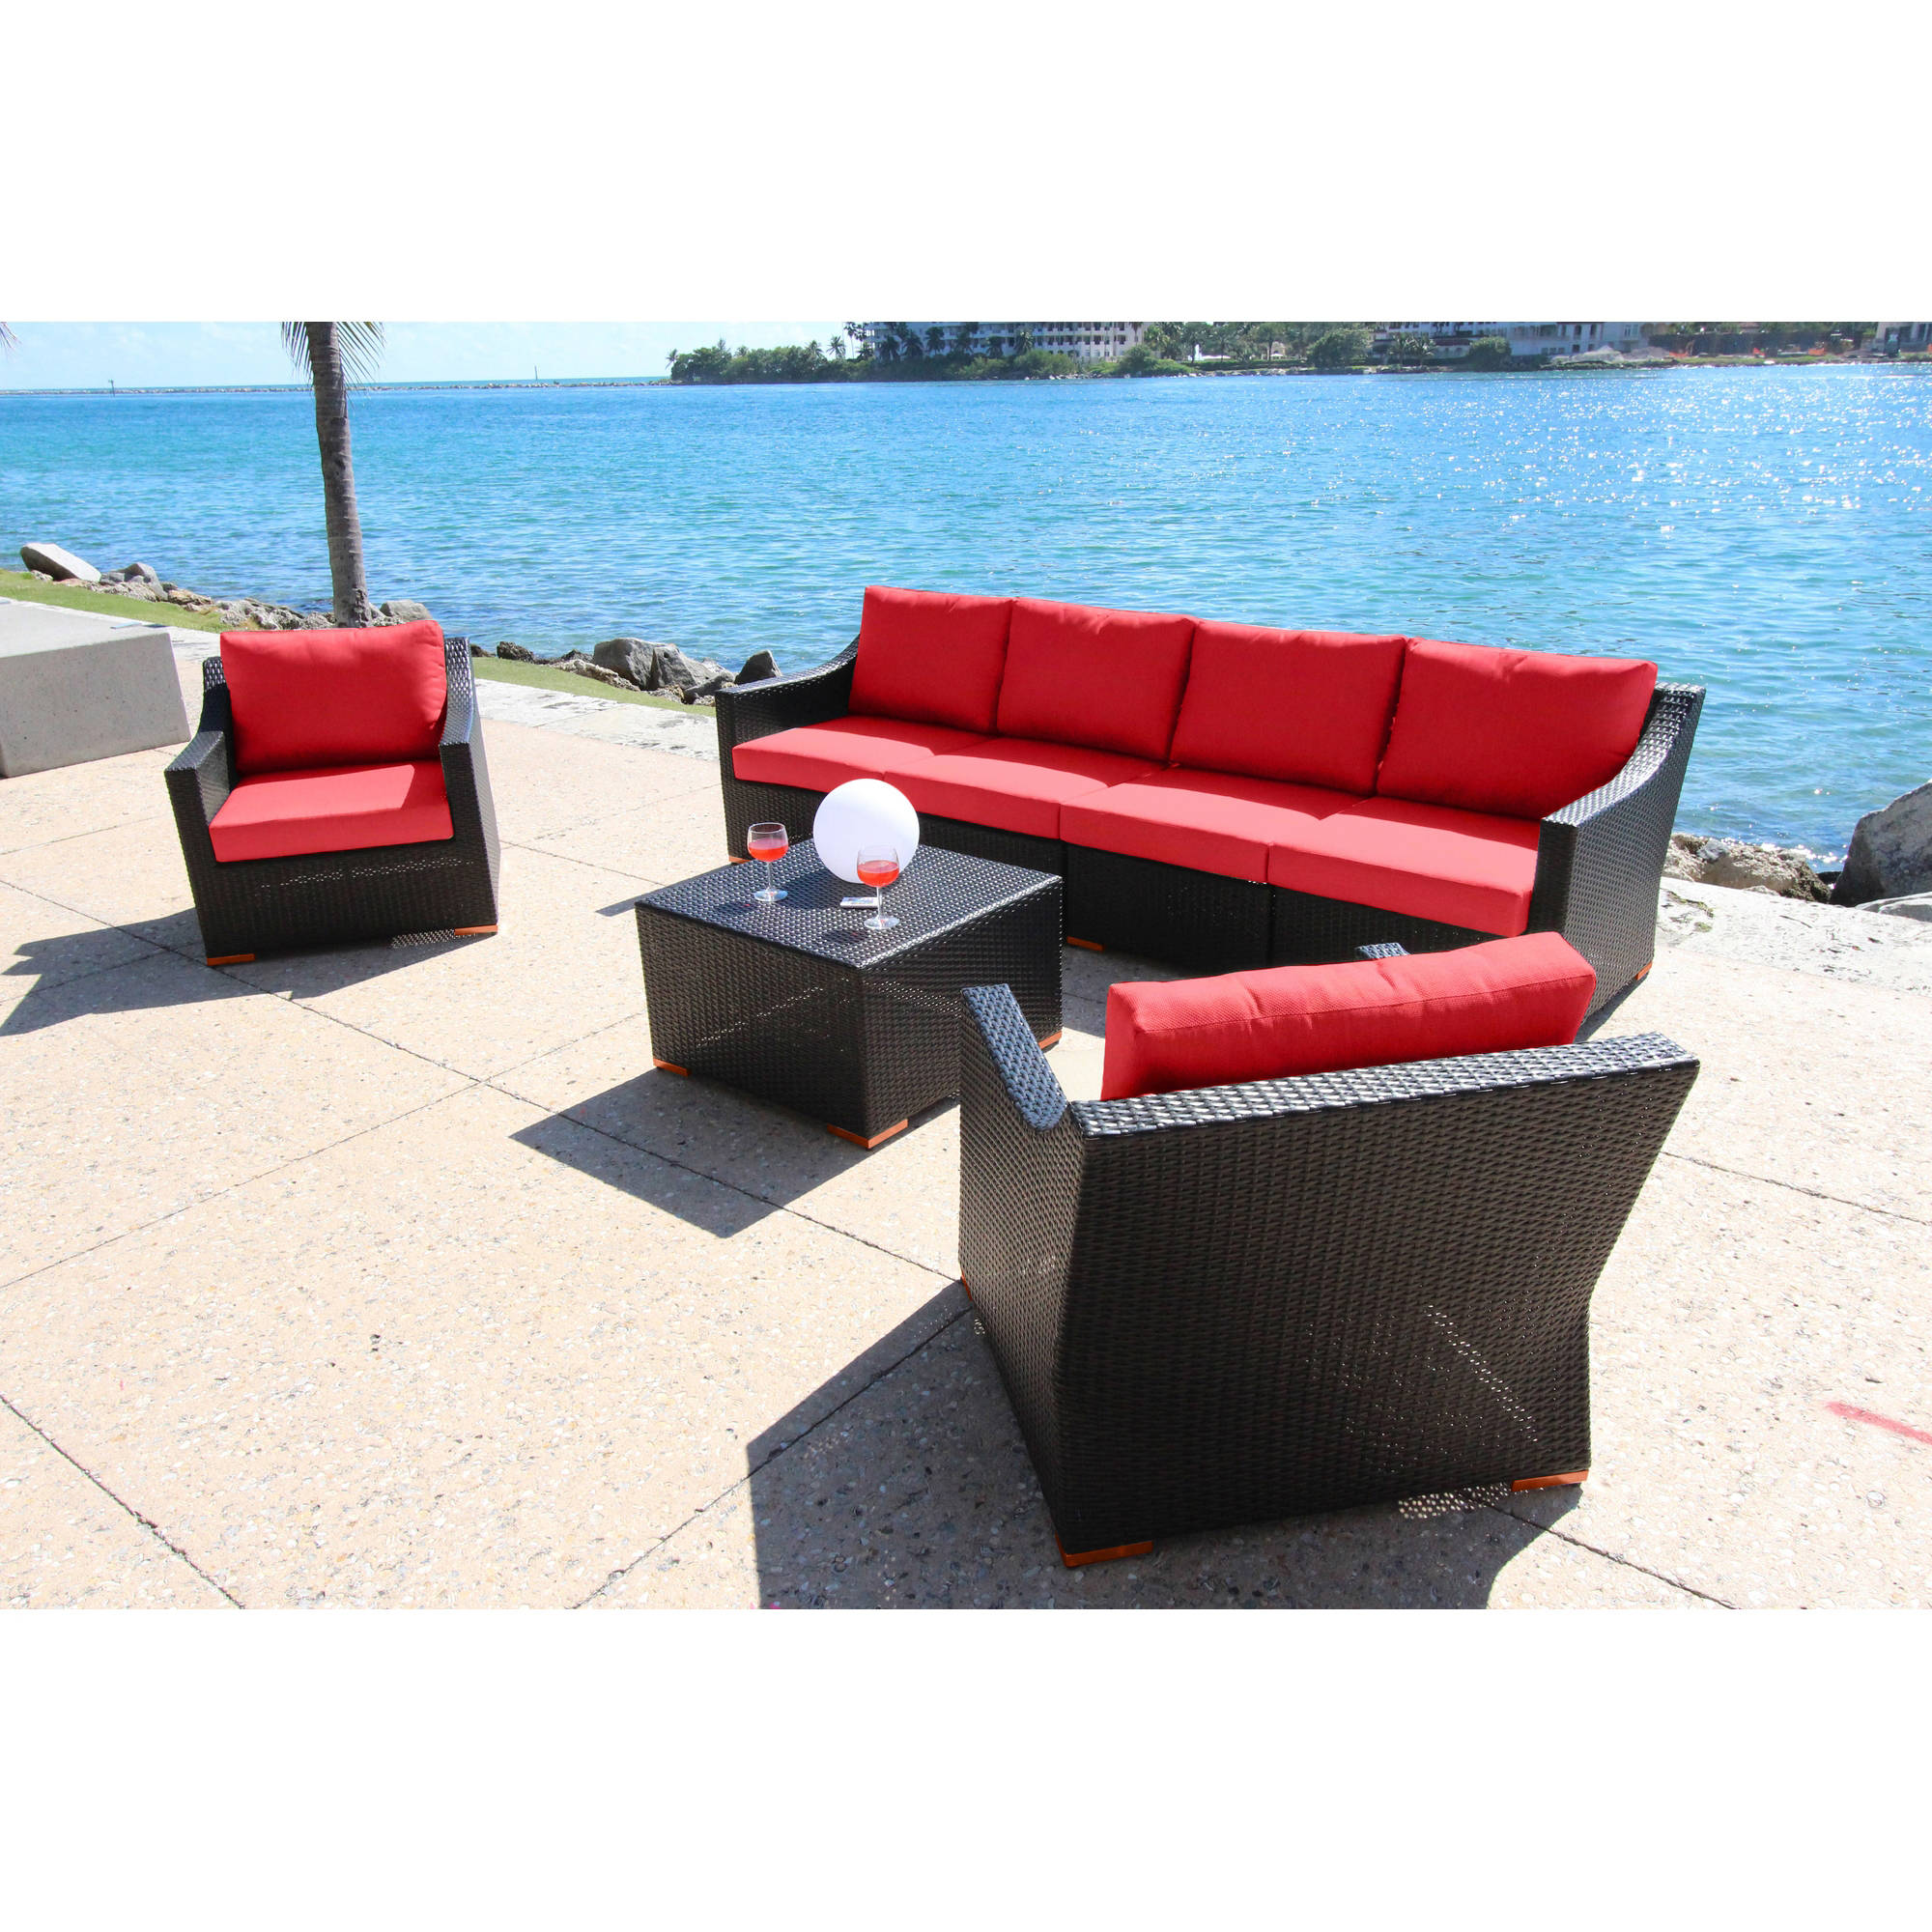 Bellini Home and Garden Cava 7-Piece Deep Seating Sofa Set